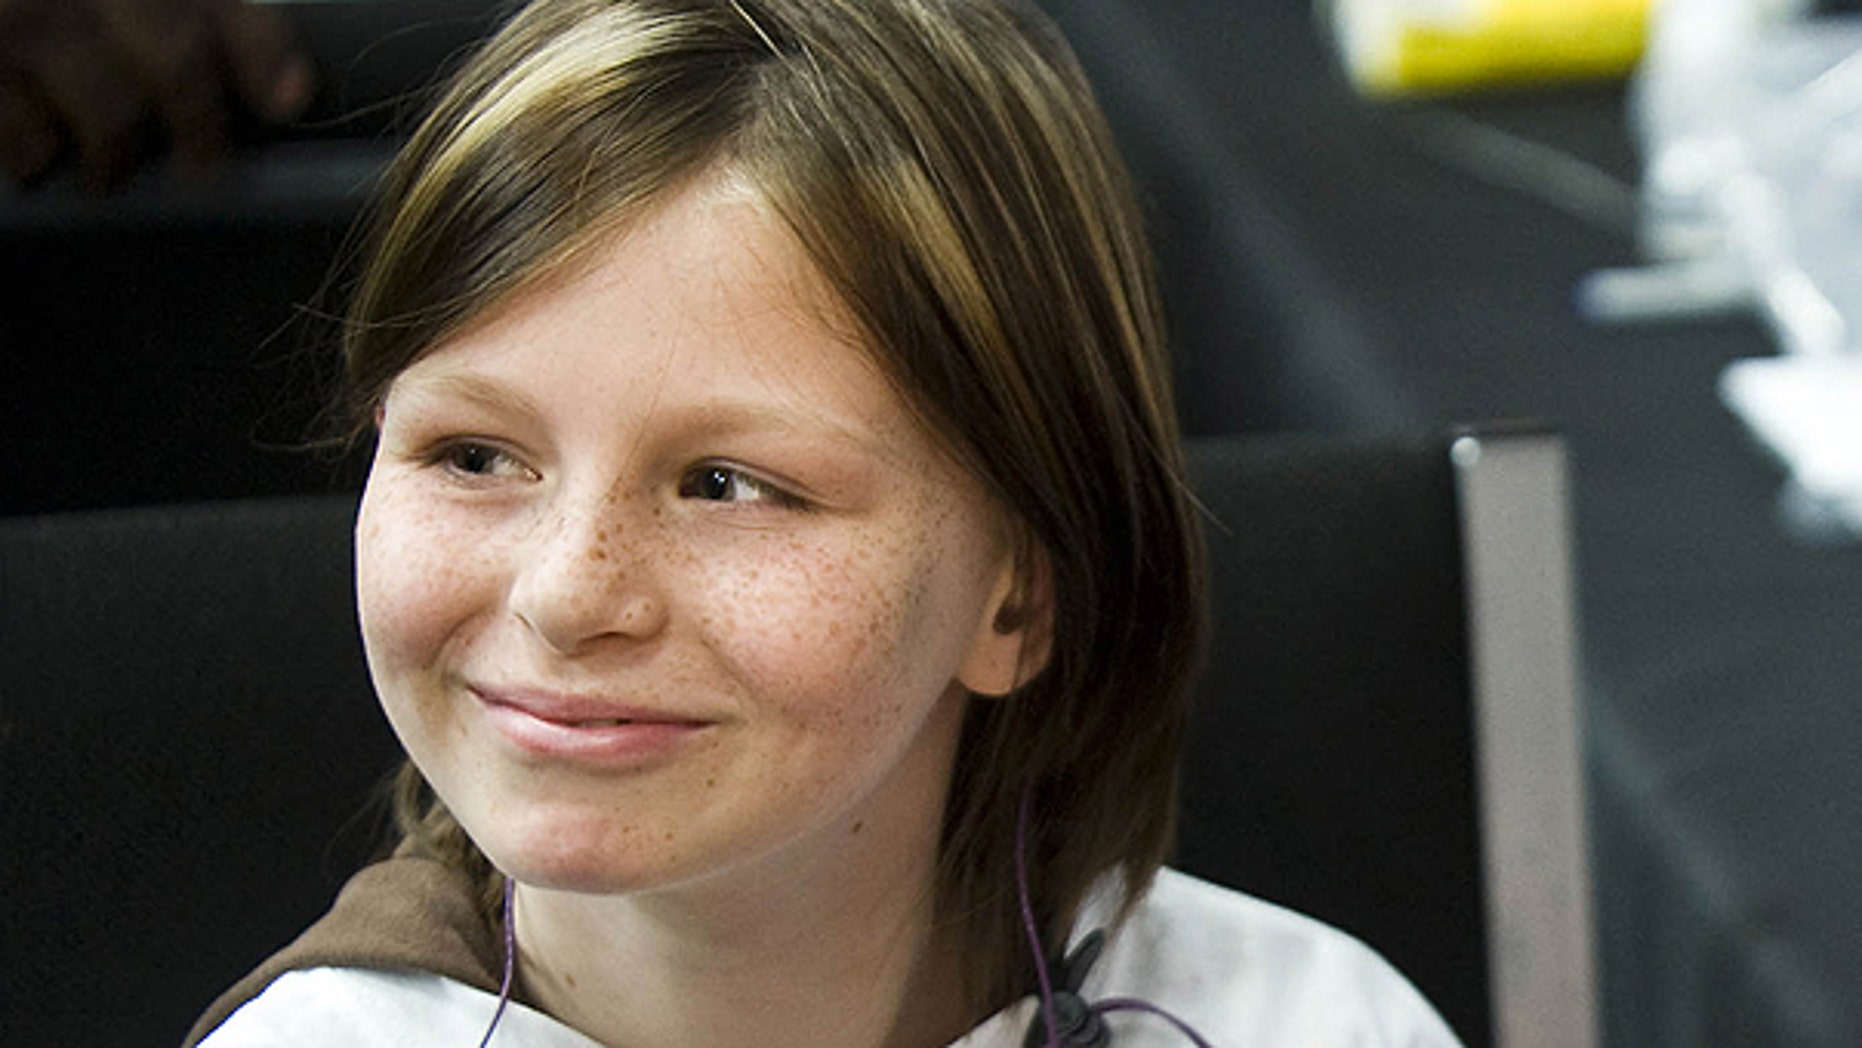 A May 2010 file photo shows Zahra Clare Baker, 10, waiting to get a hearing aid at an event at Charlotte Motor Speedway. Hickory, N.C. Hundreds of newly unsealed court documents released Tuesday Jan. 4, 2011 reveal that scrutiny in the disappearance and death of the freckle-faced Australian immigrant fell early on her stepmother and father, and has not wavered significantly since.